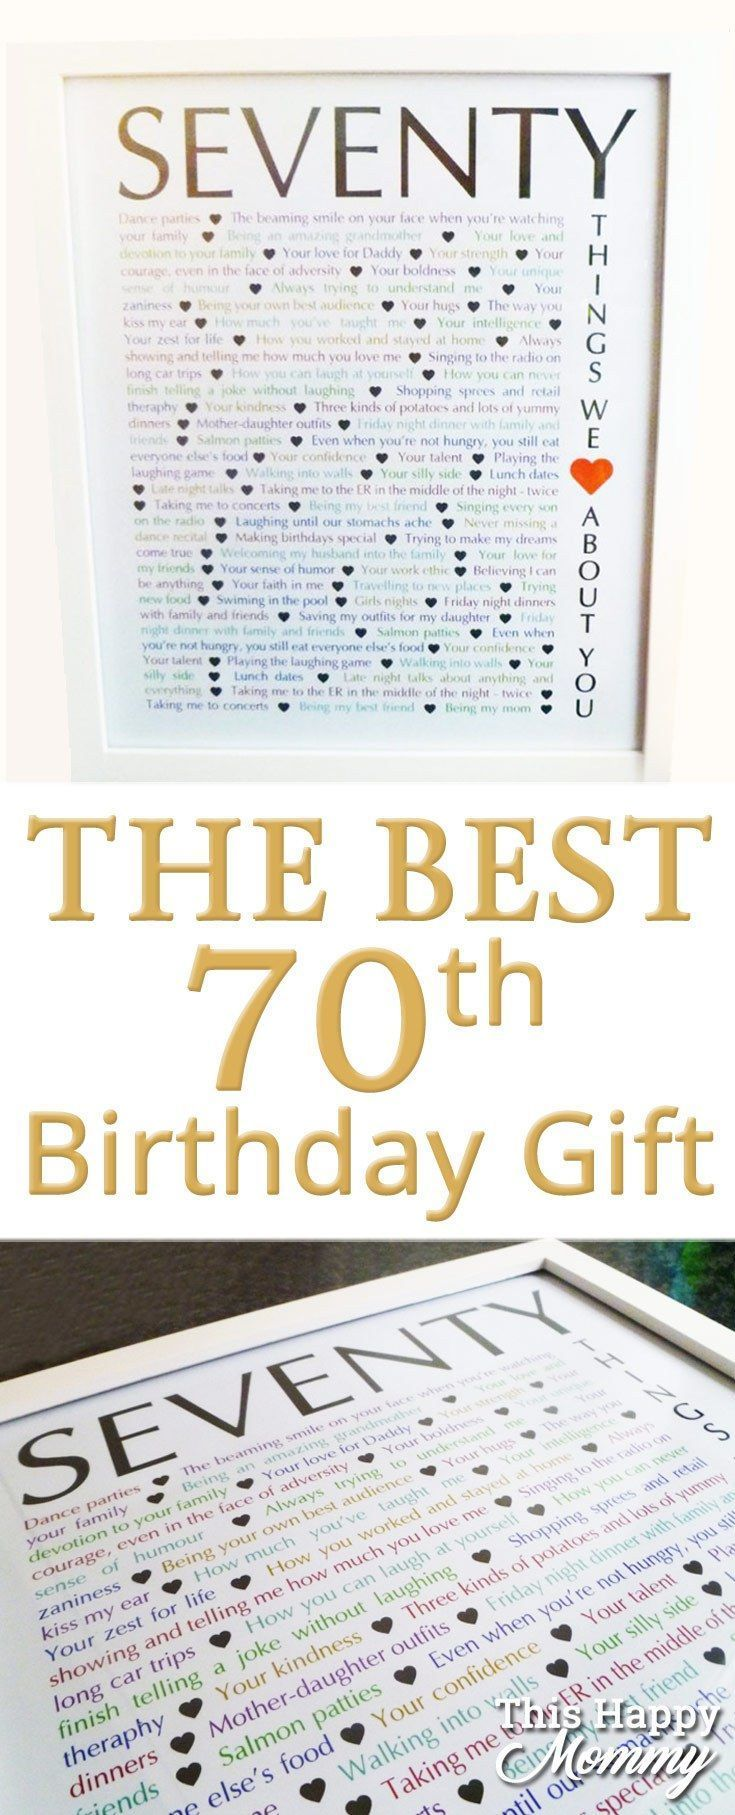 70 Things We Love About You The Perfect Homemade 70th Birthday Gift Idea